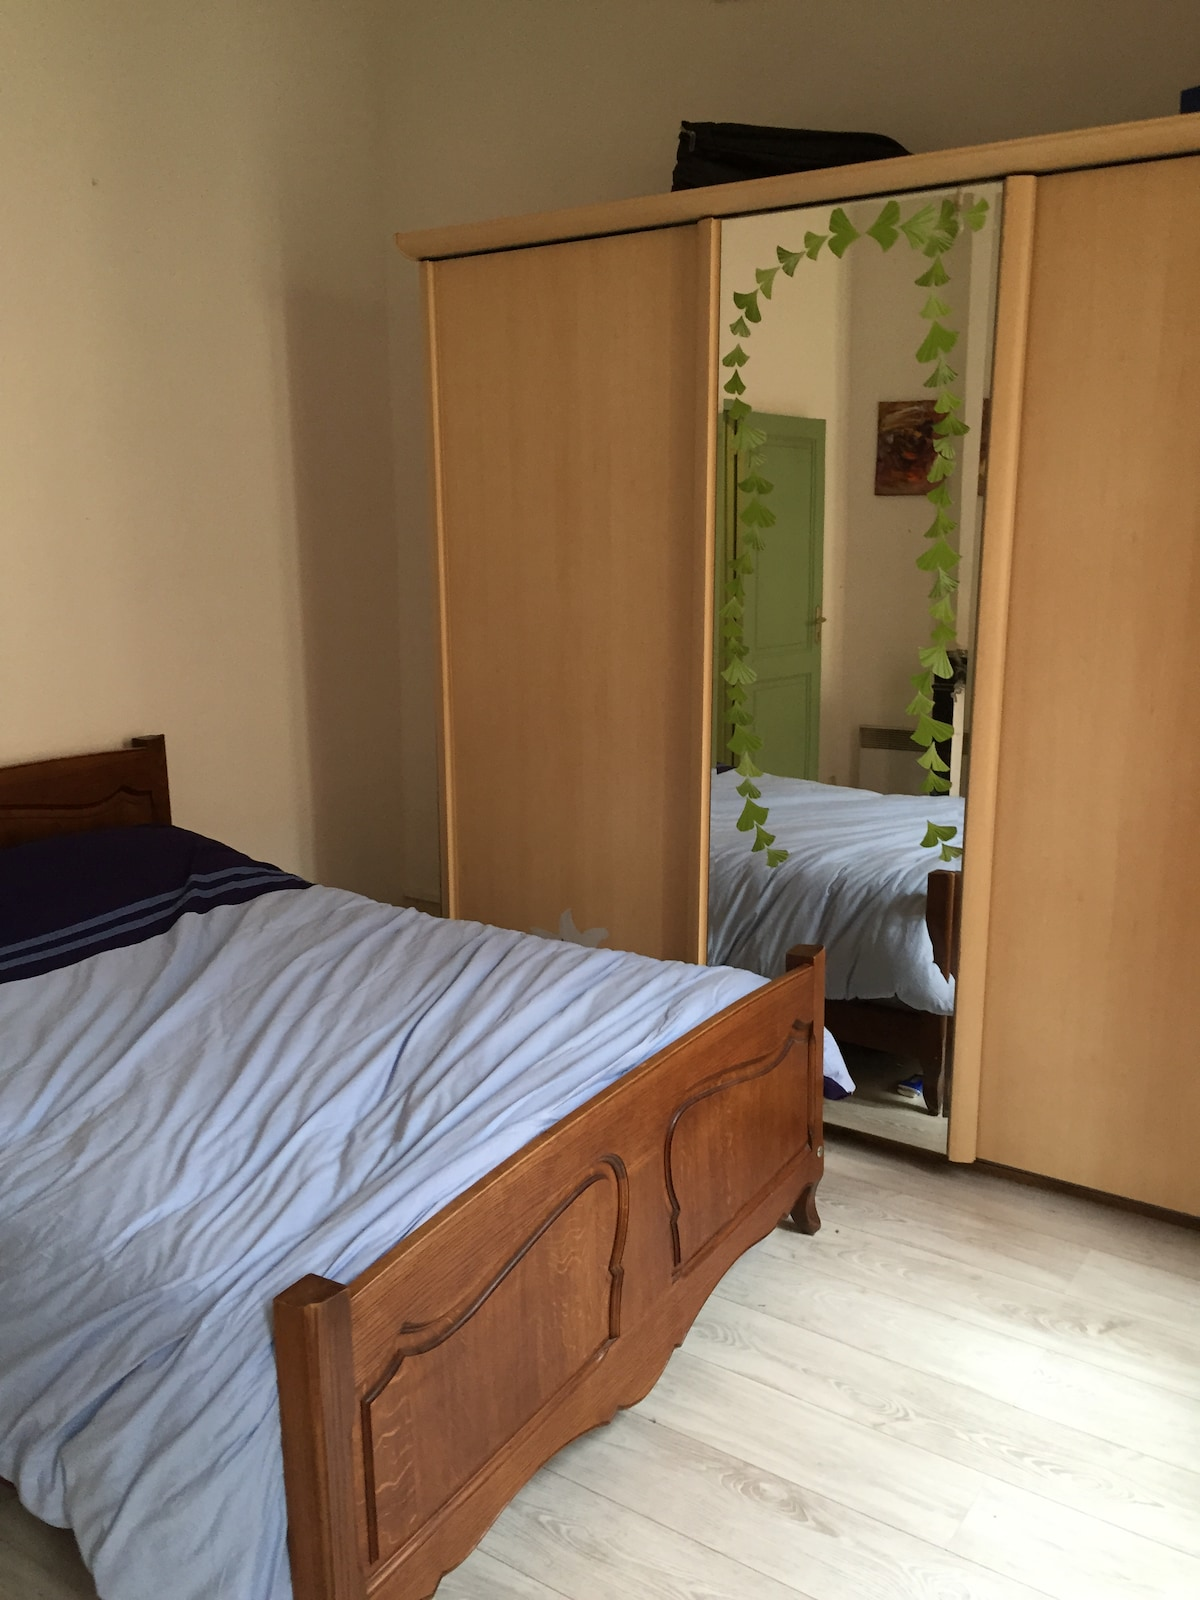 Belle chambre spacieuse 25m2